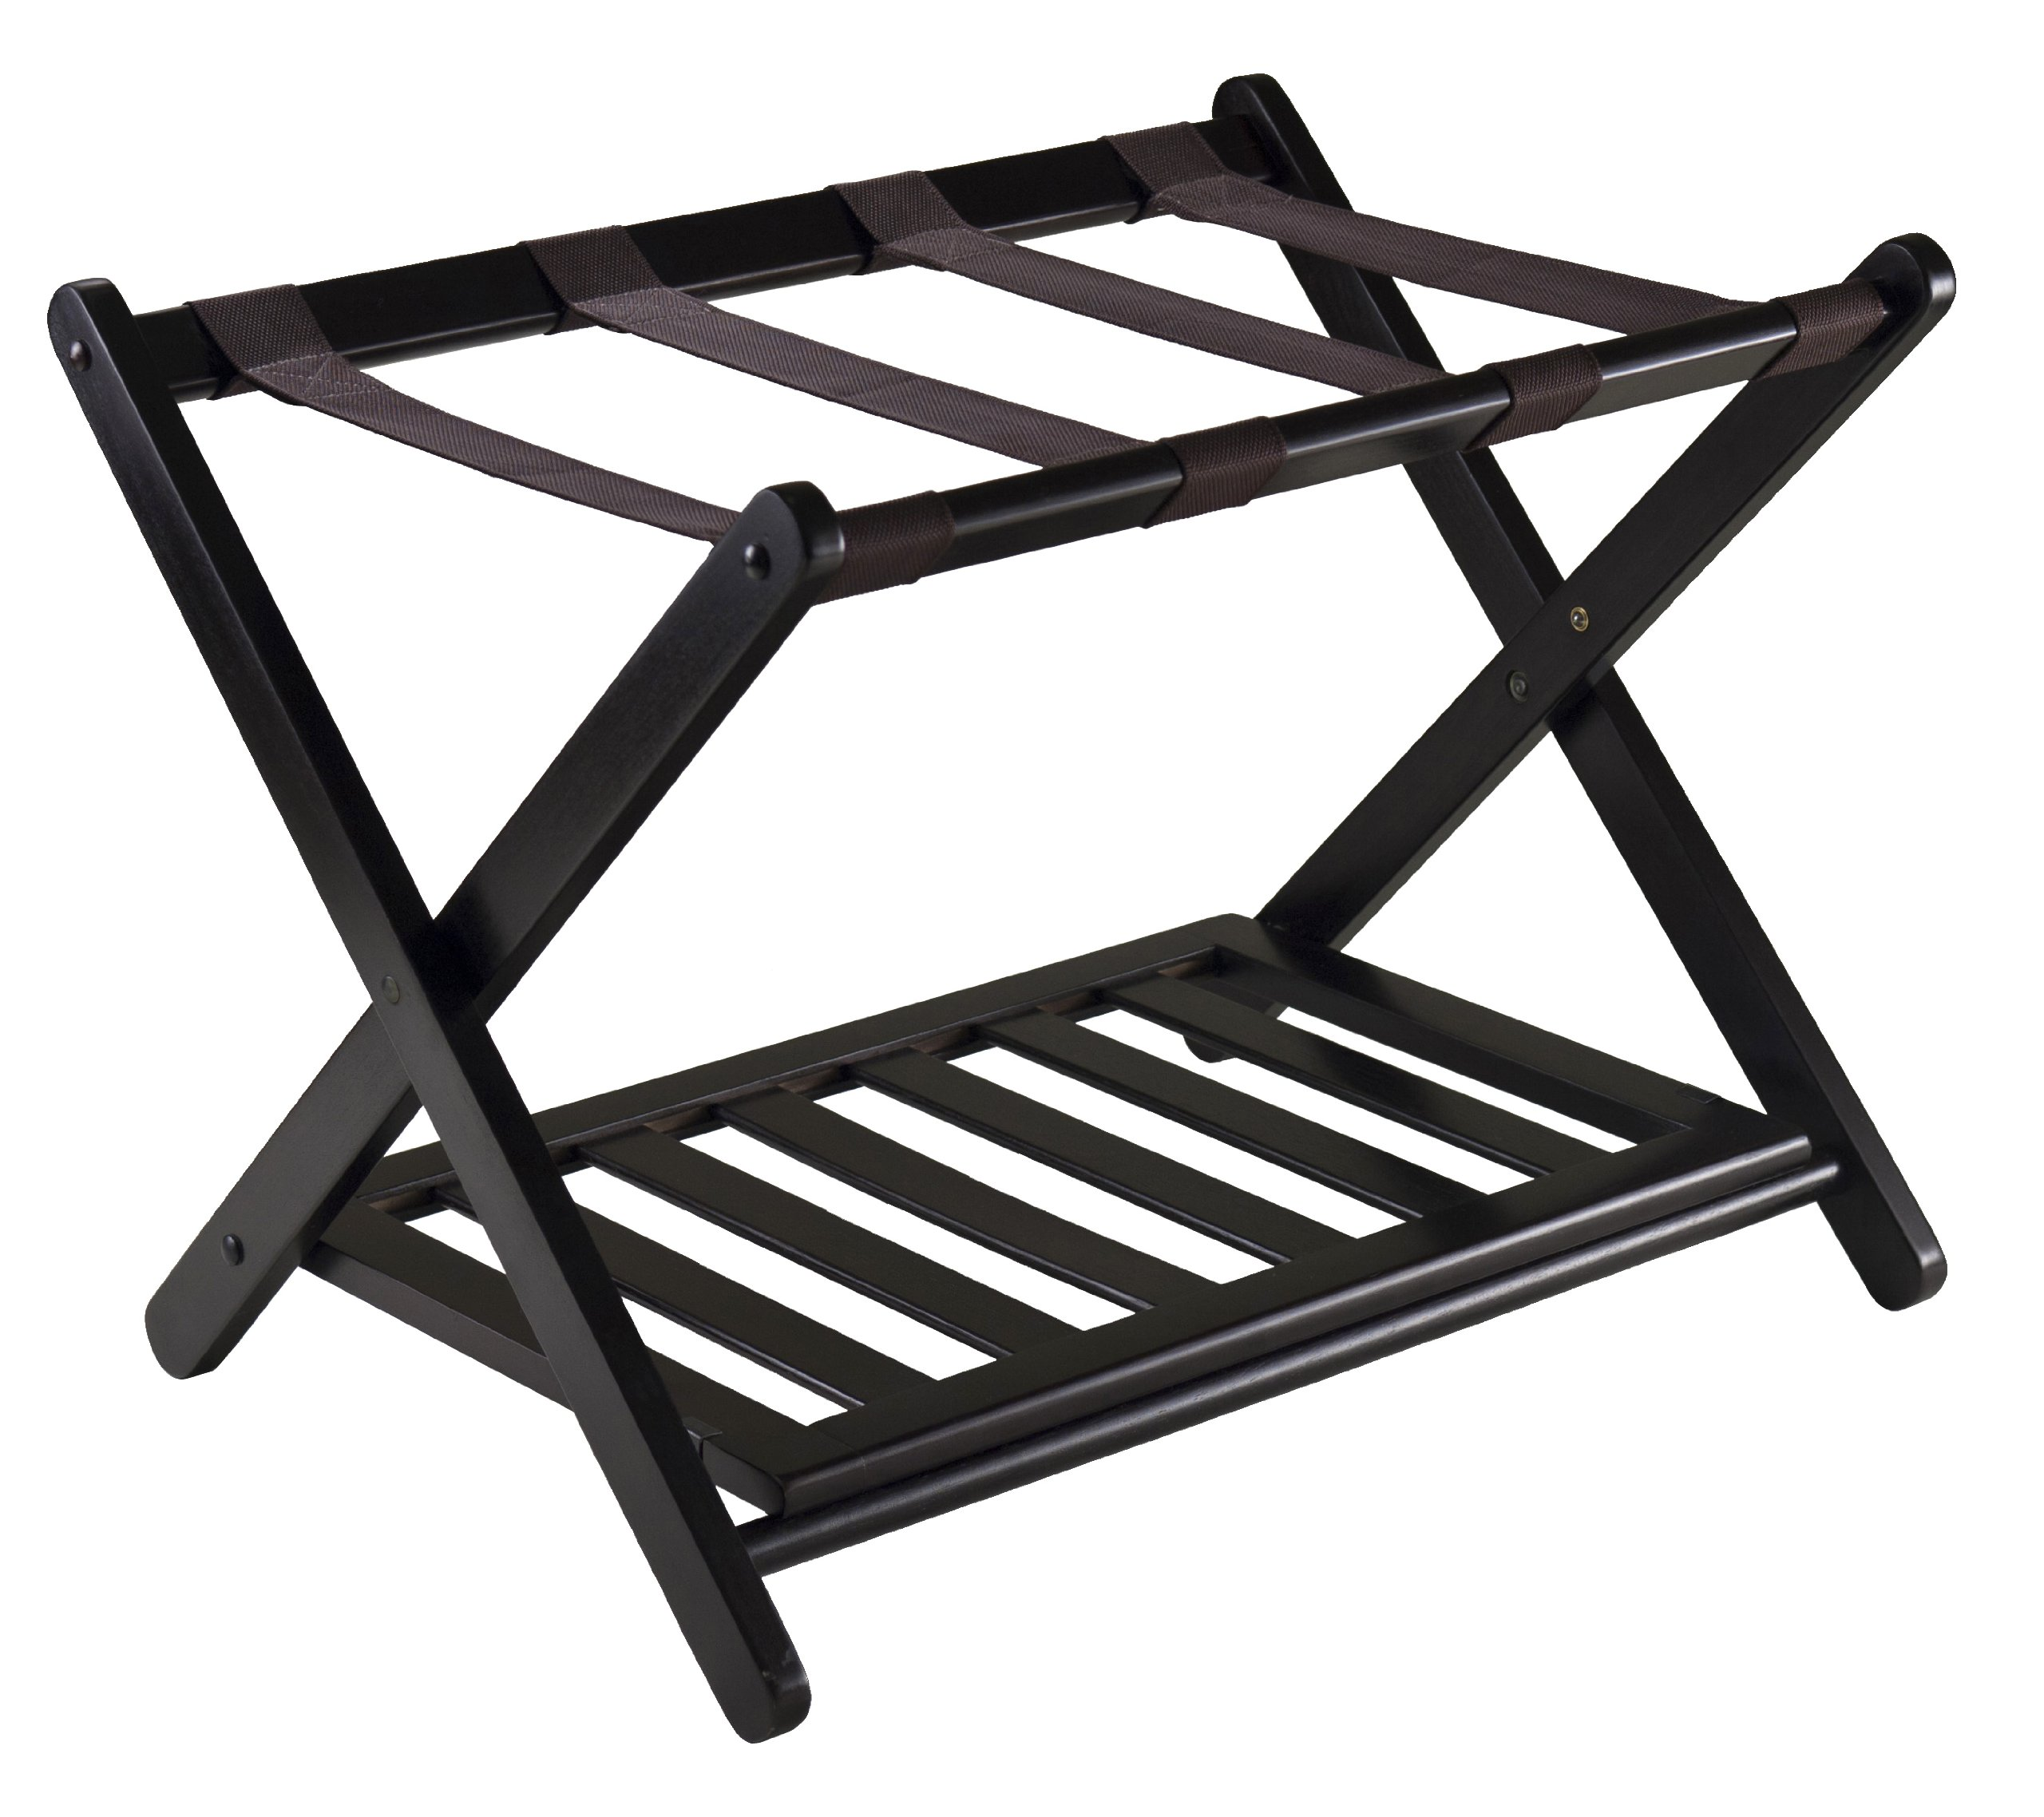 Winsome 92436 Luggage Rack with Shelf by Winsome